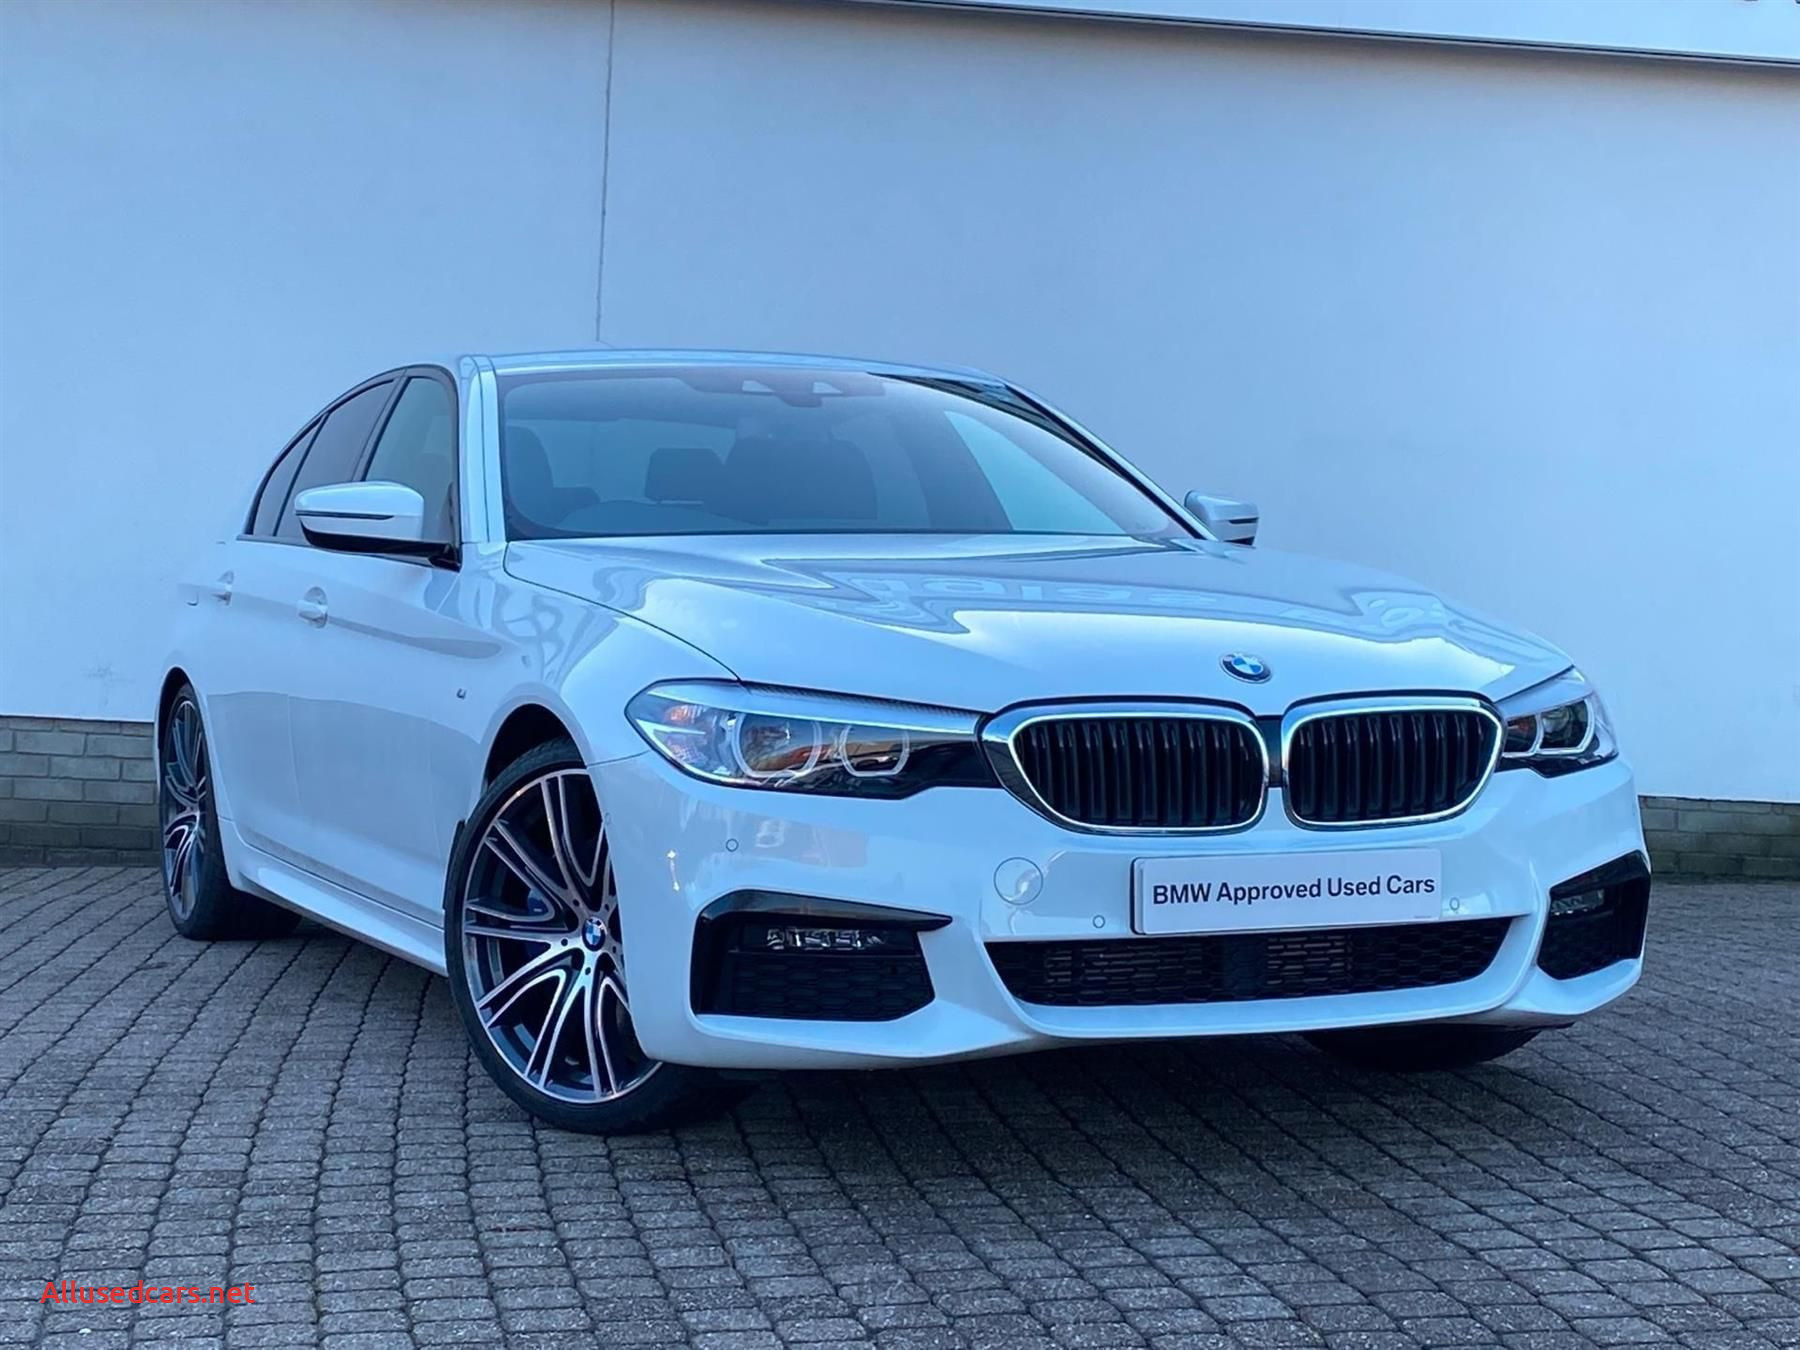 Bmw 2013 Lovely Used Bmw Cars for Sale with Pistonheads